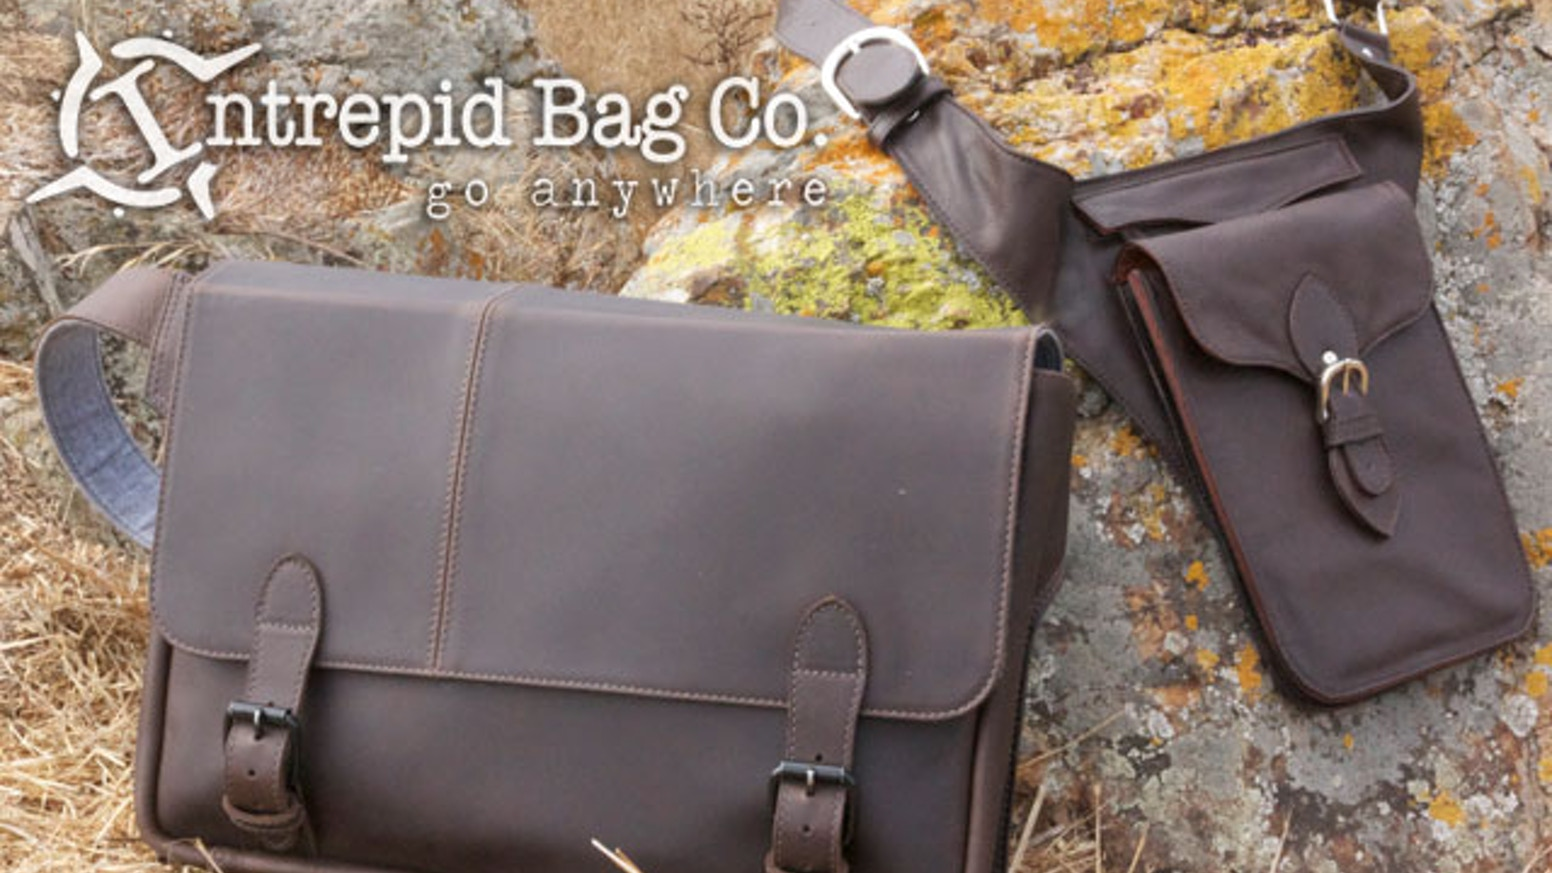 Premium leather travel bags with hands-free styling, crafted to comfortably fit a Laptop, an iPad/iPad Mini, and more.